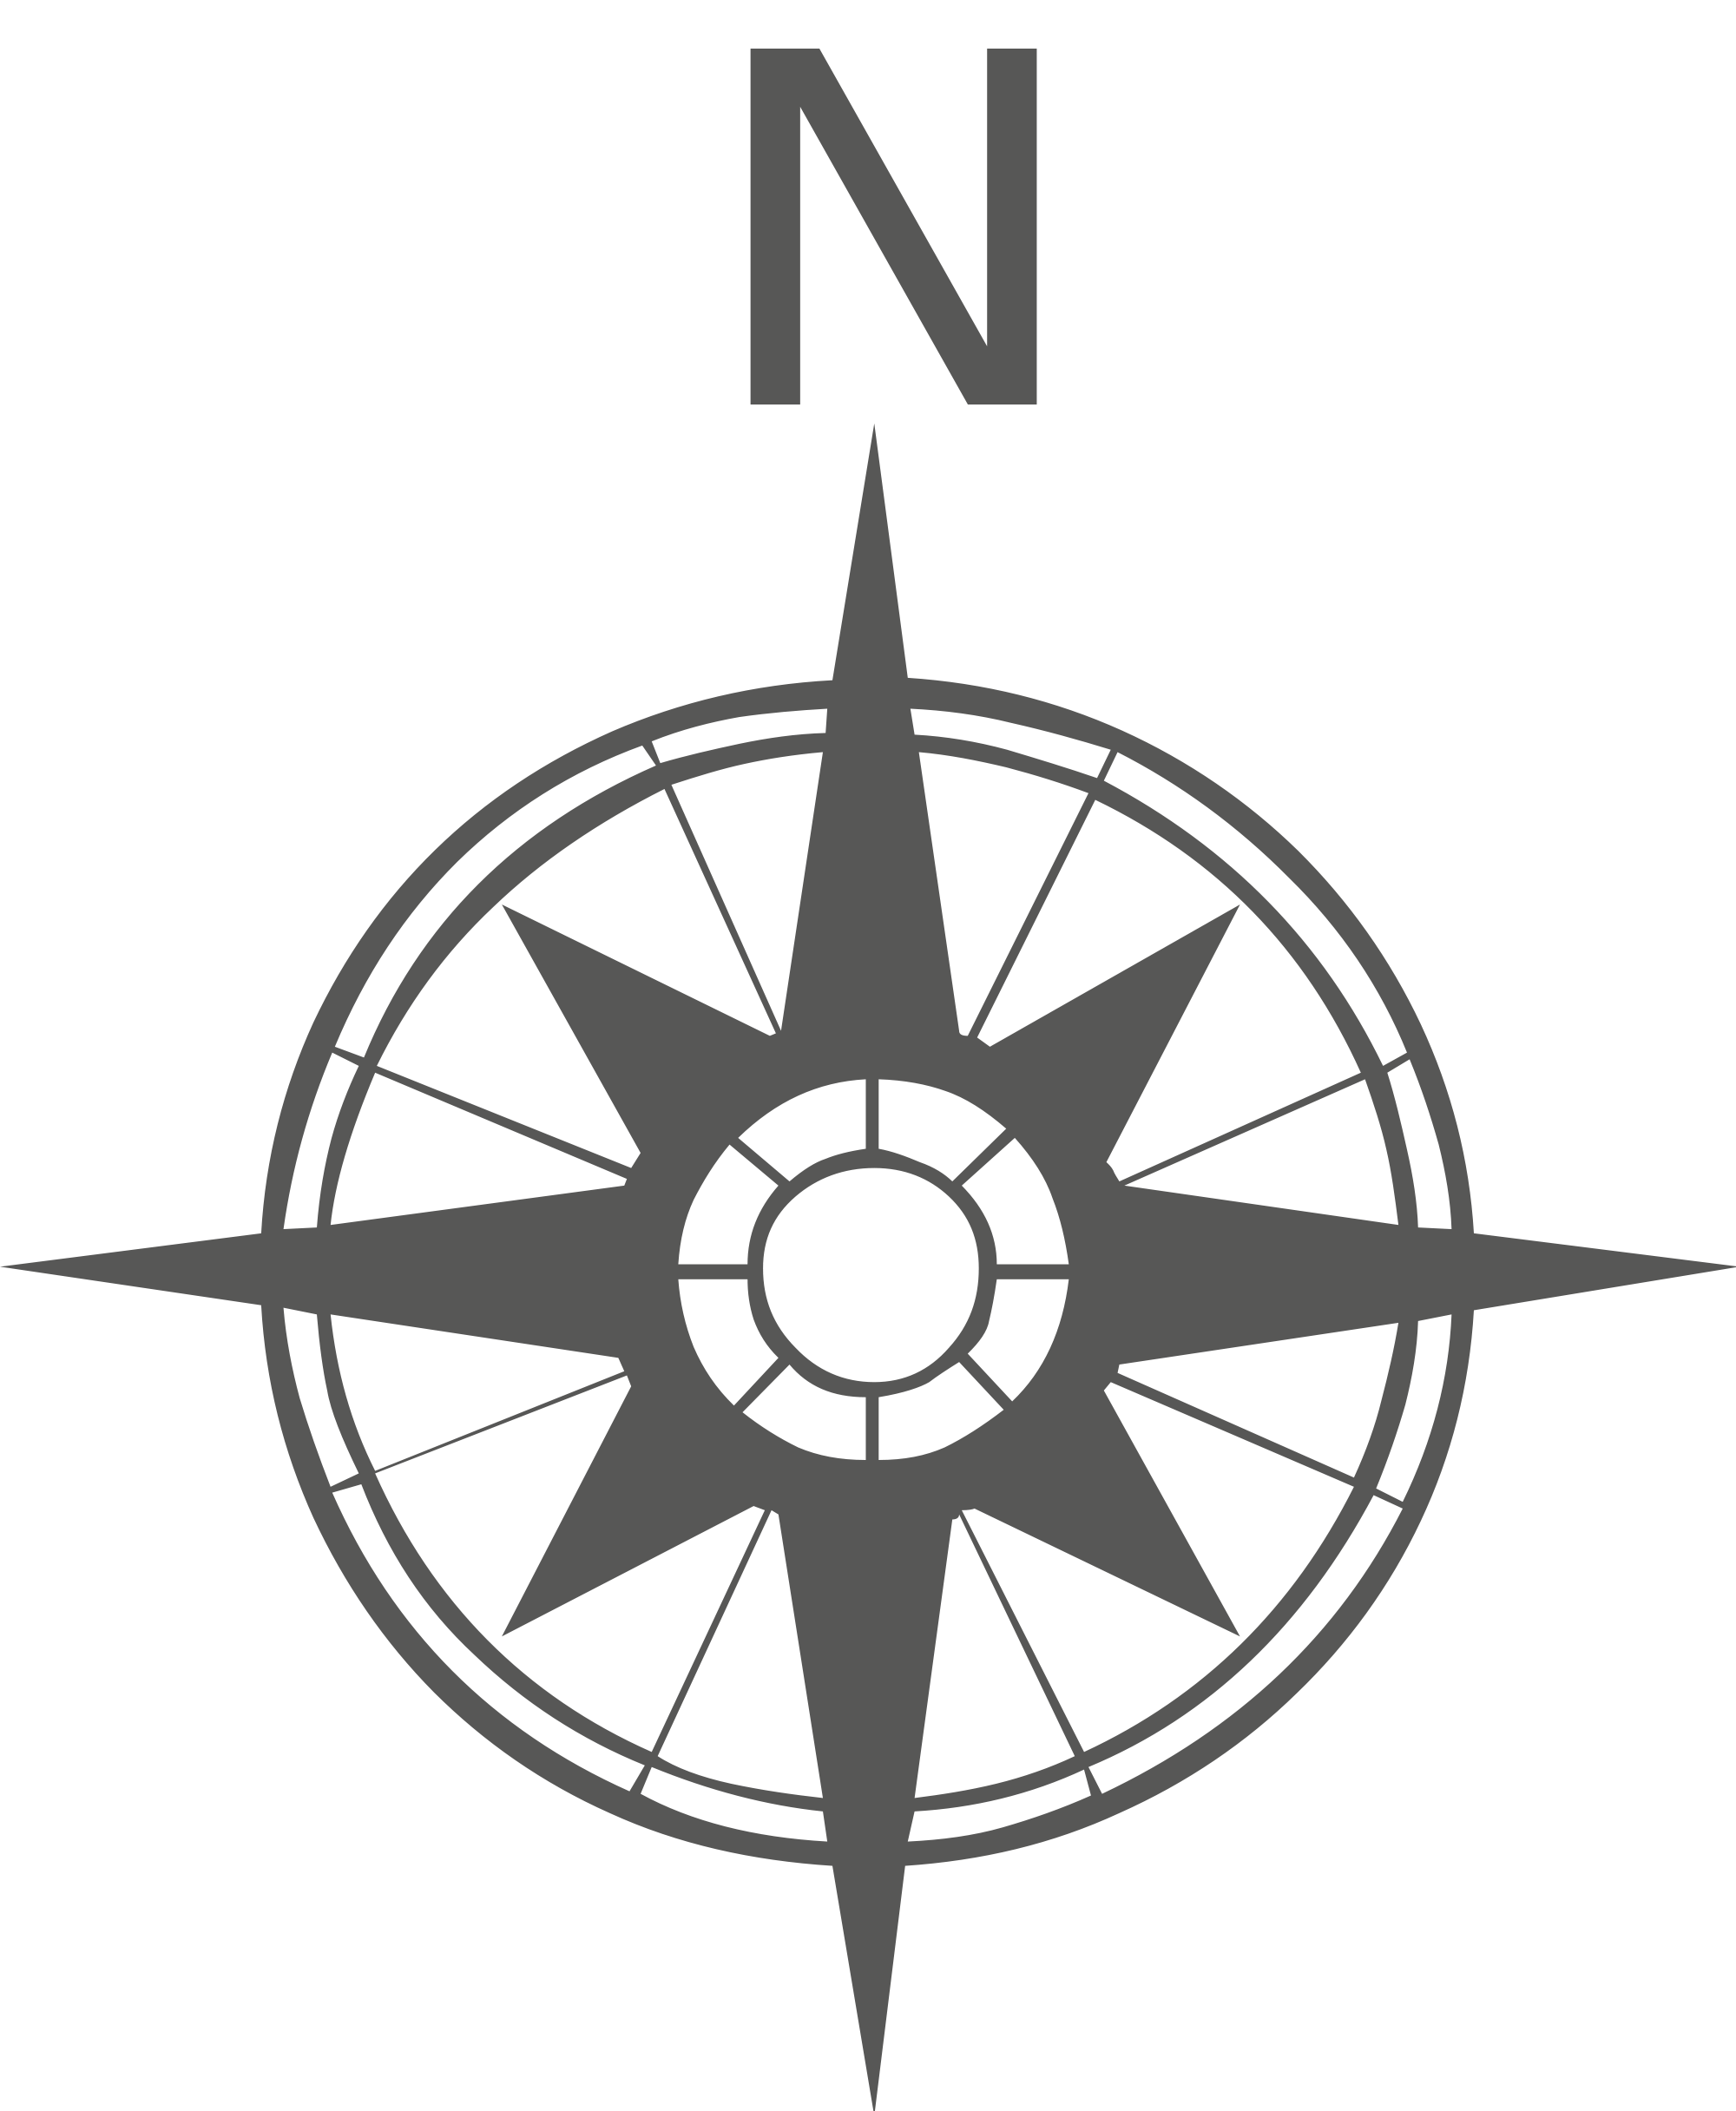 Compass Rose PNG Black And White Transparent Compass Rose Black And.